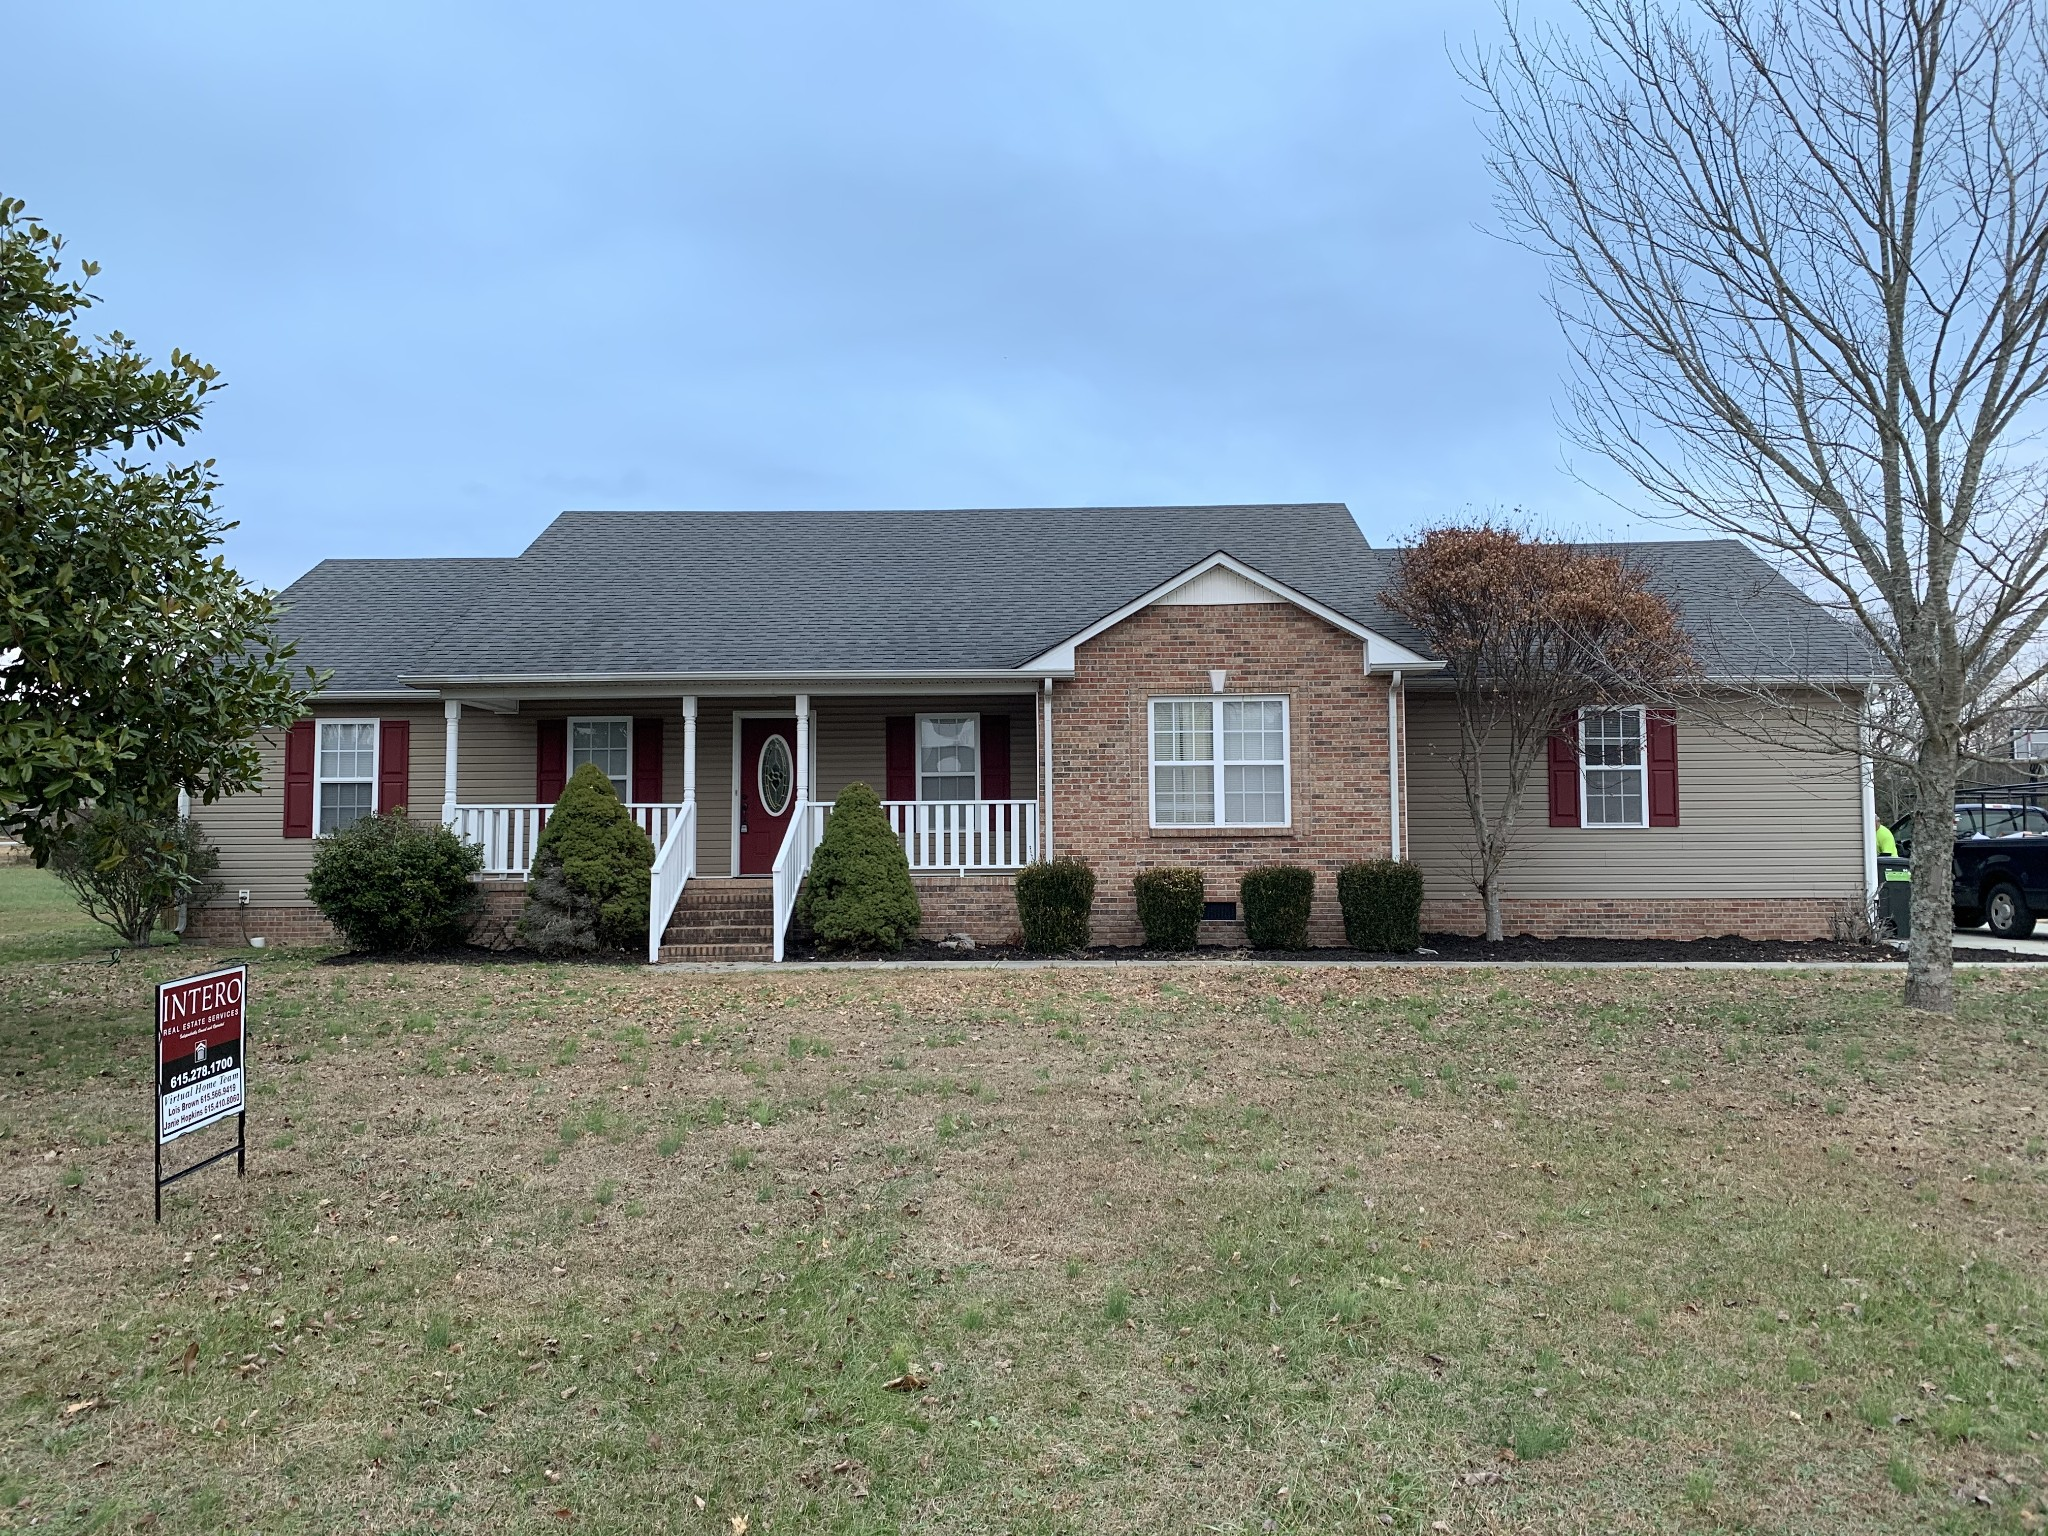 93 Coventry Ct, Hillsboro, TN 37342 - Hillsboro, TN real estate listing